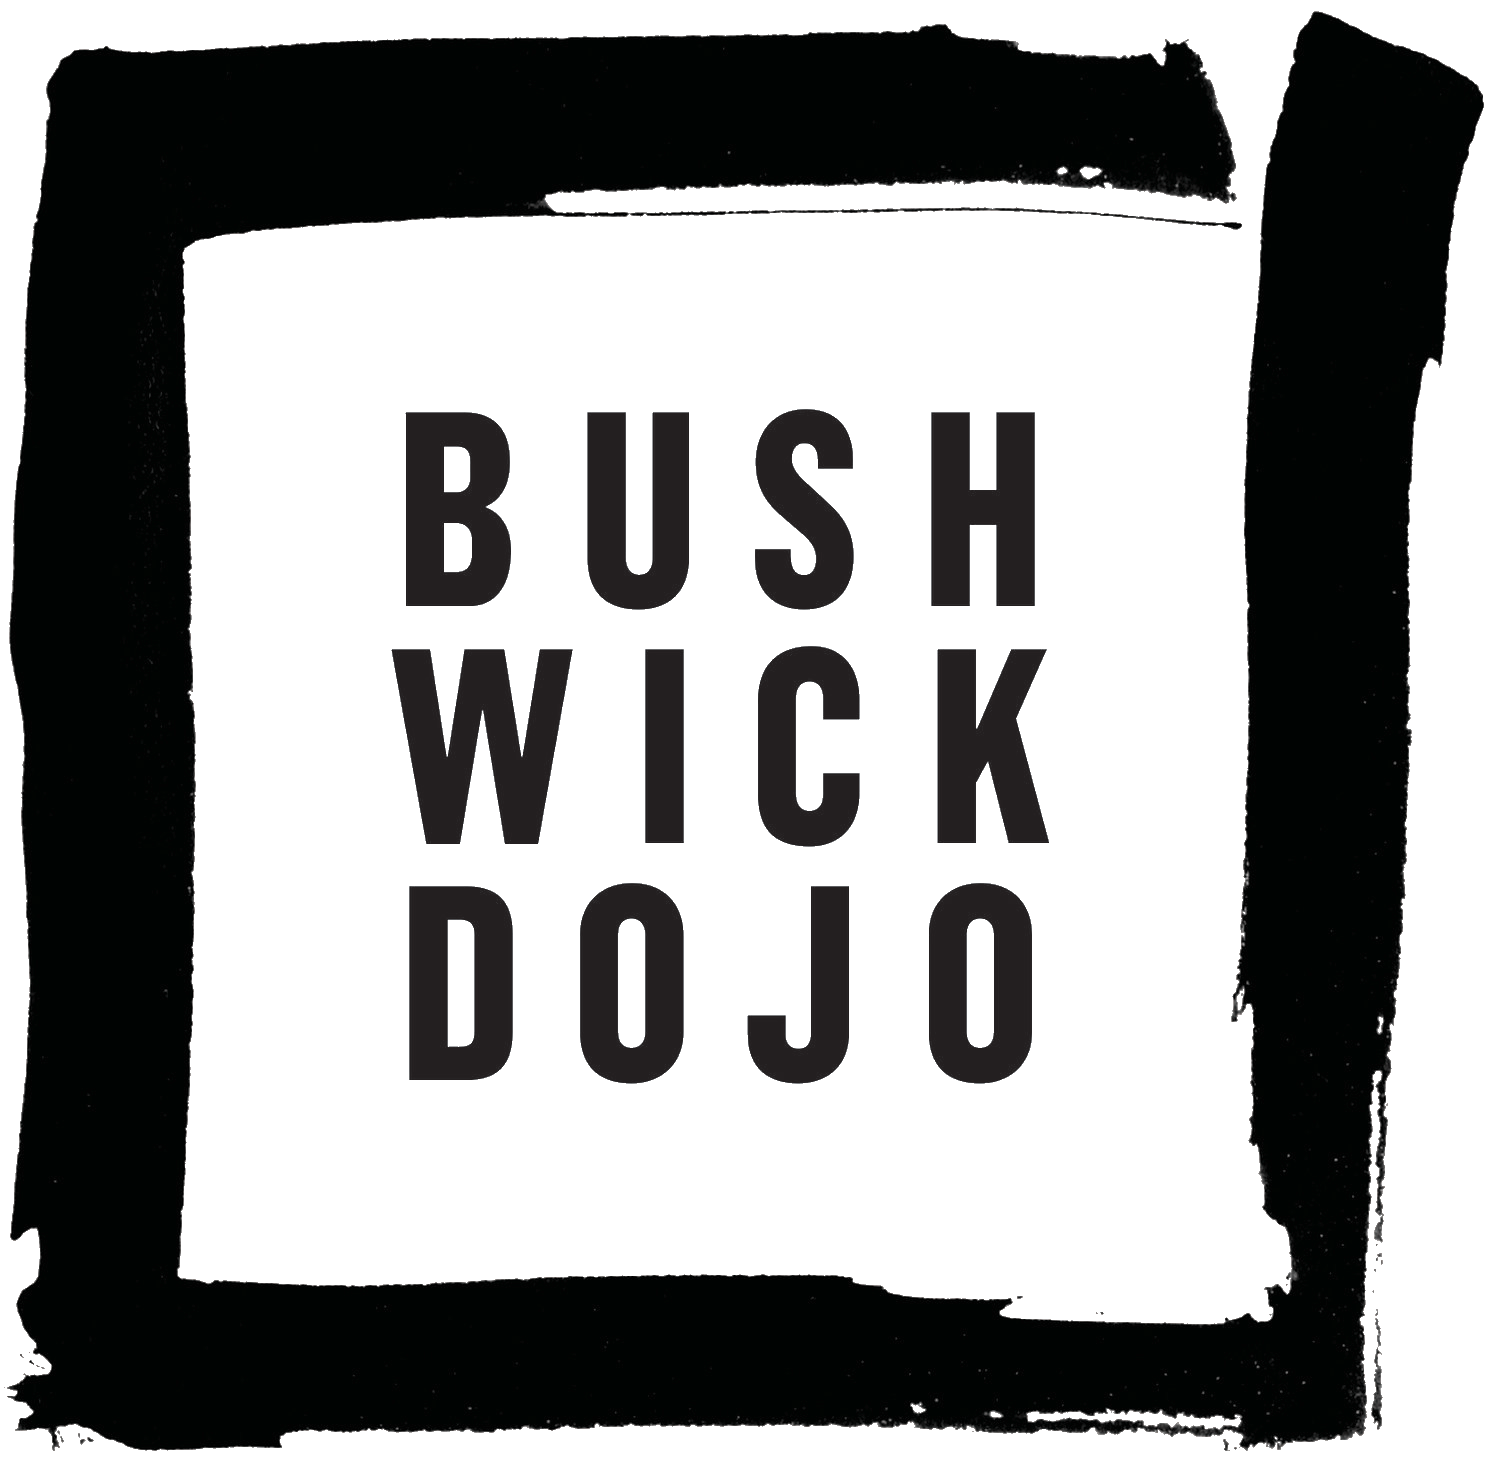 Bushwick Dojo | Traditional Aikido taught with a modern spirit in Brooklyn, New York